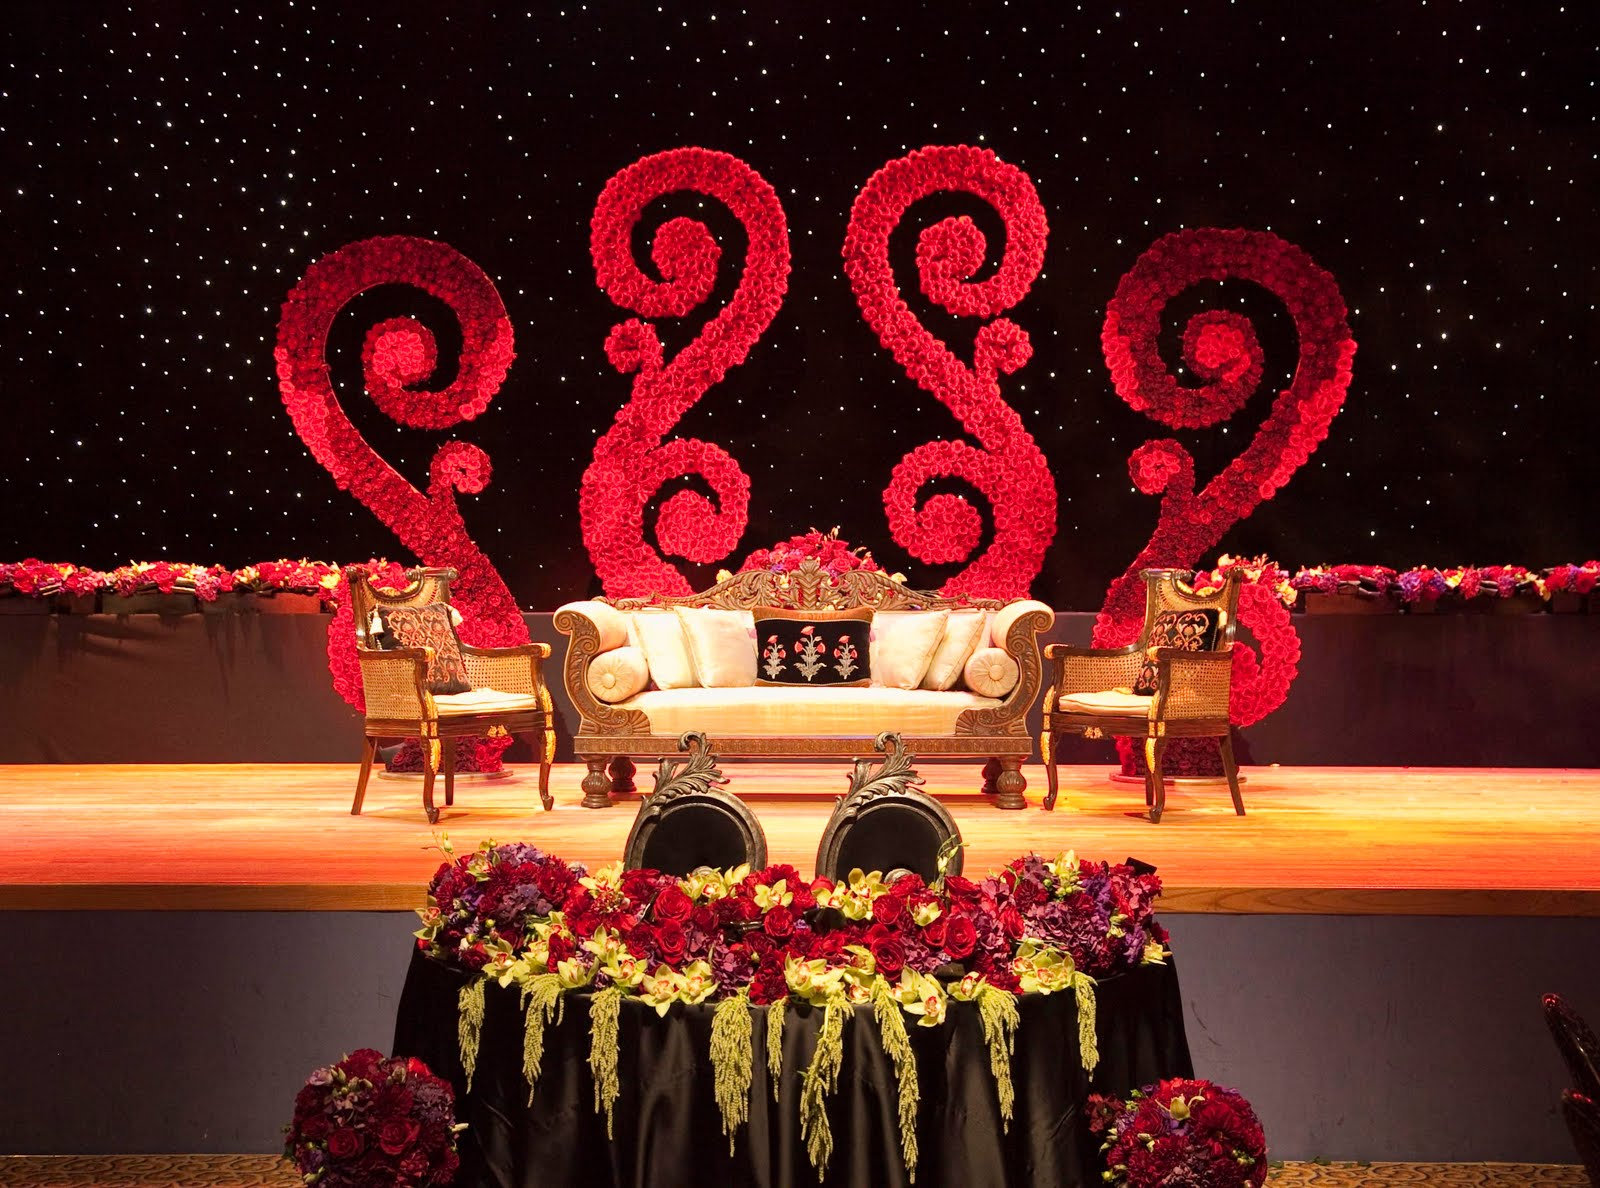 about marriage: marriage decoration photos 2013 | marriage ...